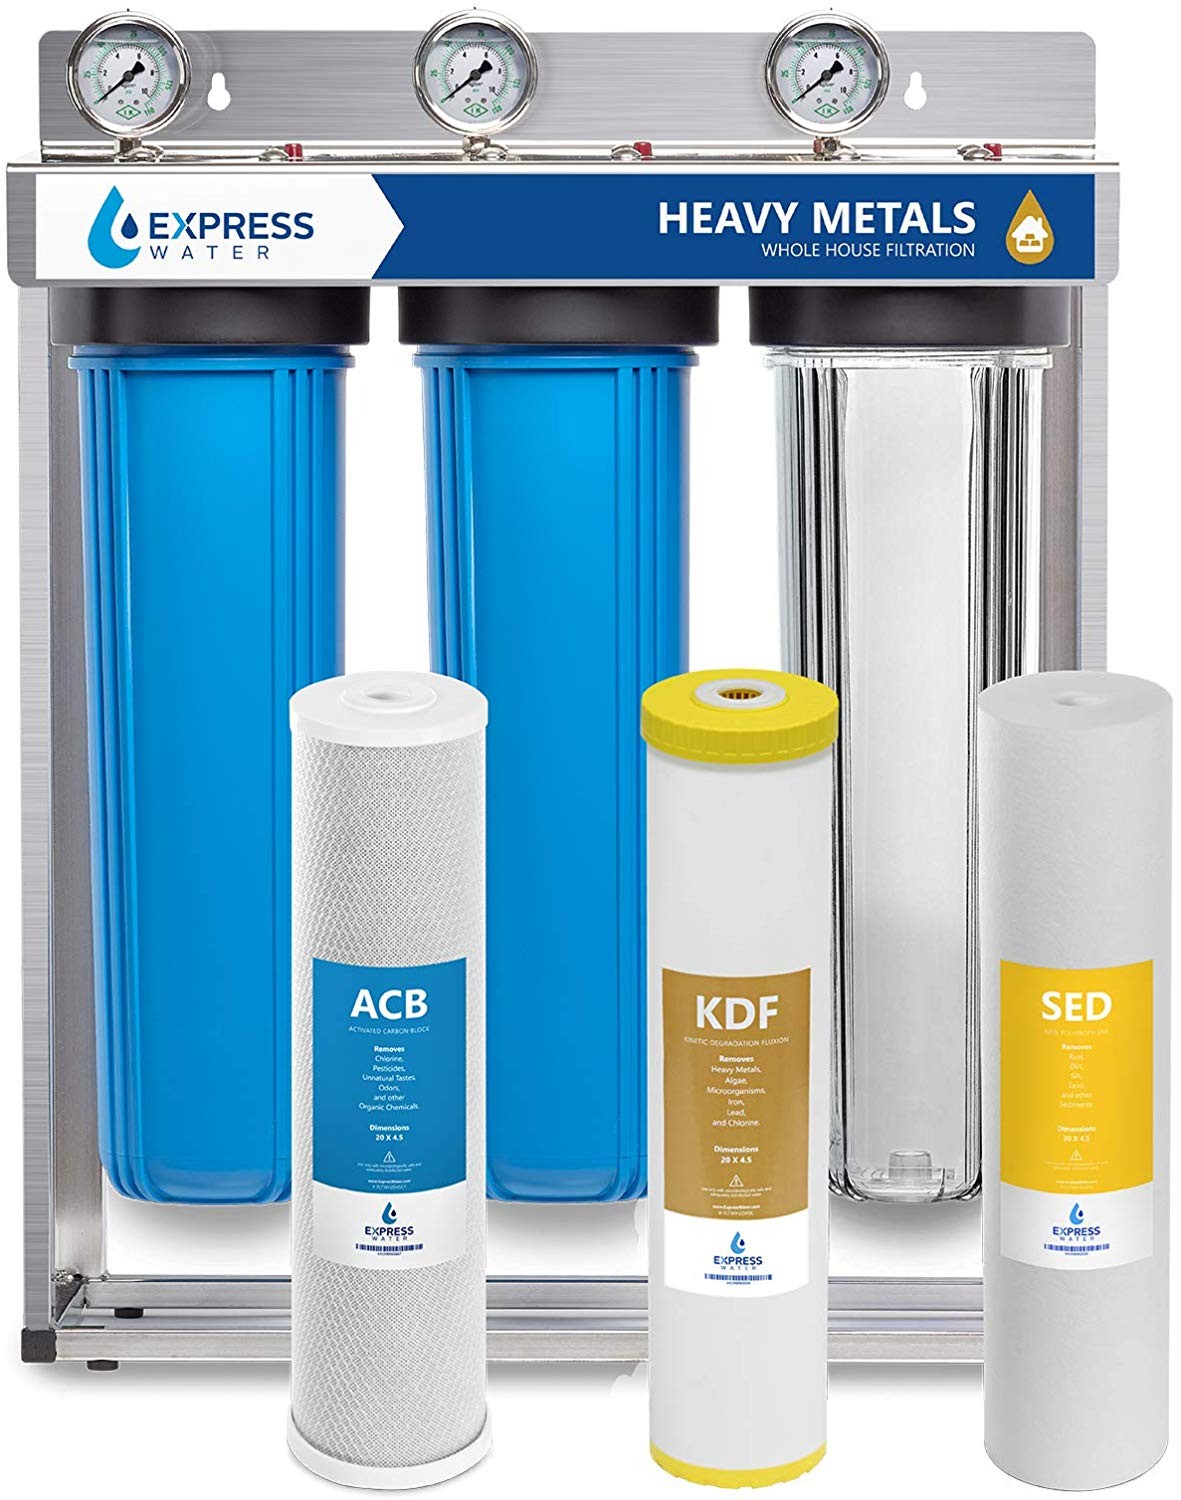 Express water wh300scks whole house water filter